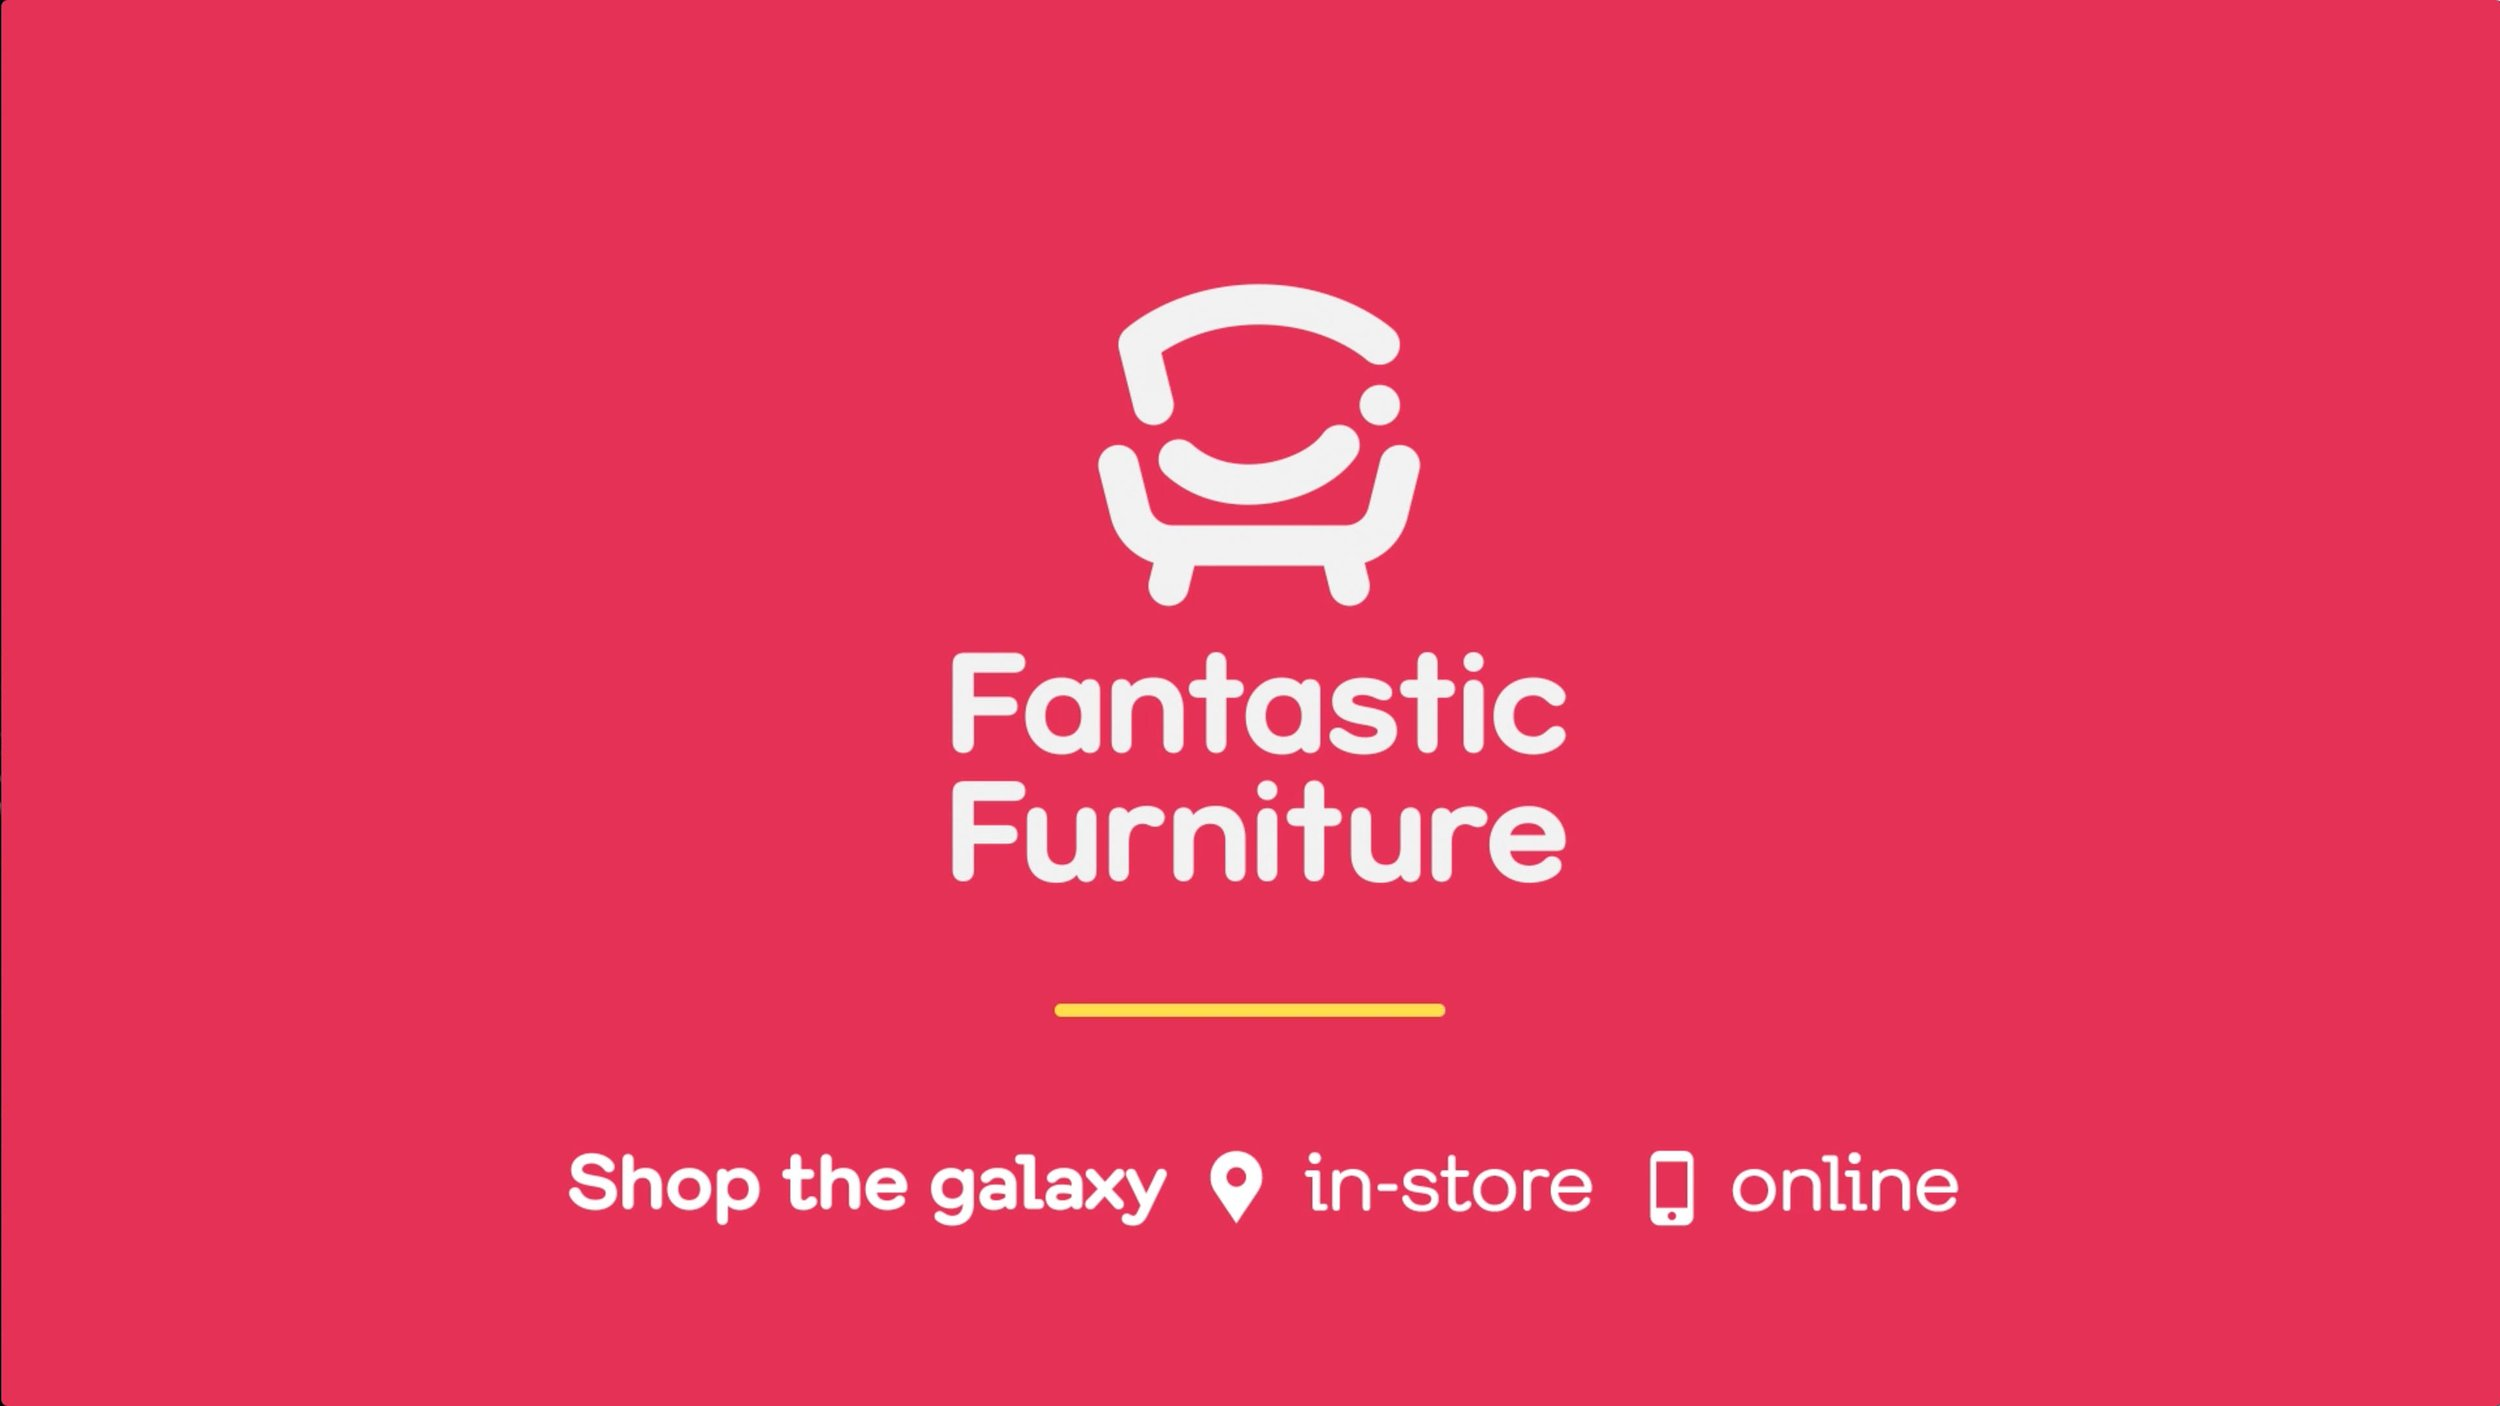 Fantastic Furniture 02 copy.jpg